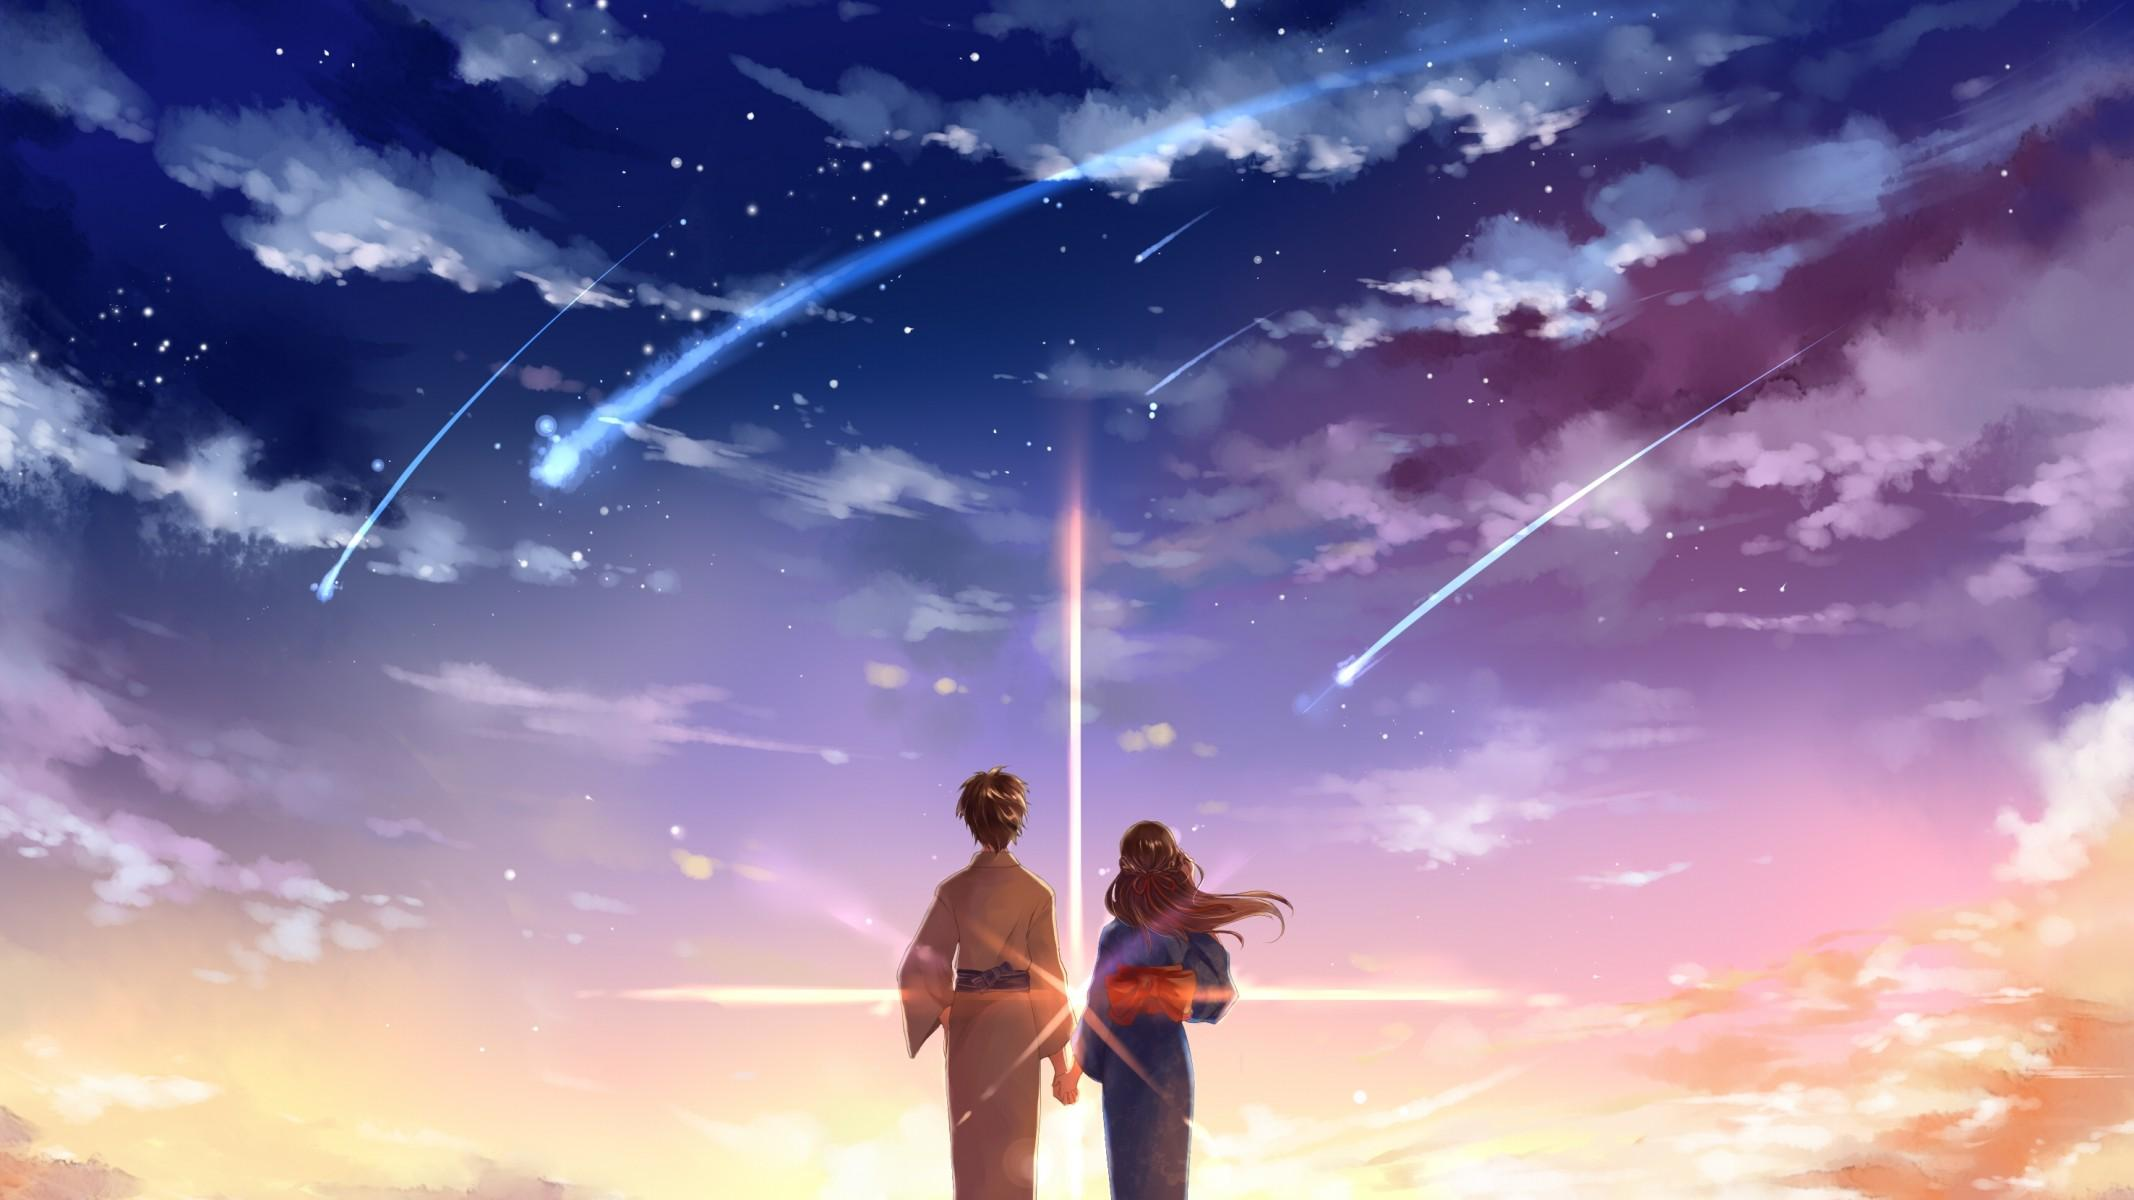 Download 2134x1200 Your Name, Kimi No Na Wa, Mitsuha Miyamizu, Taki